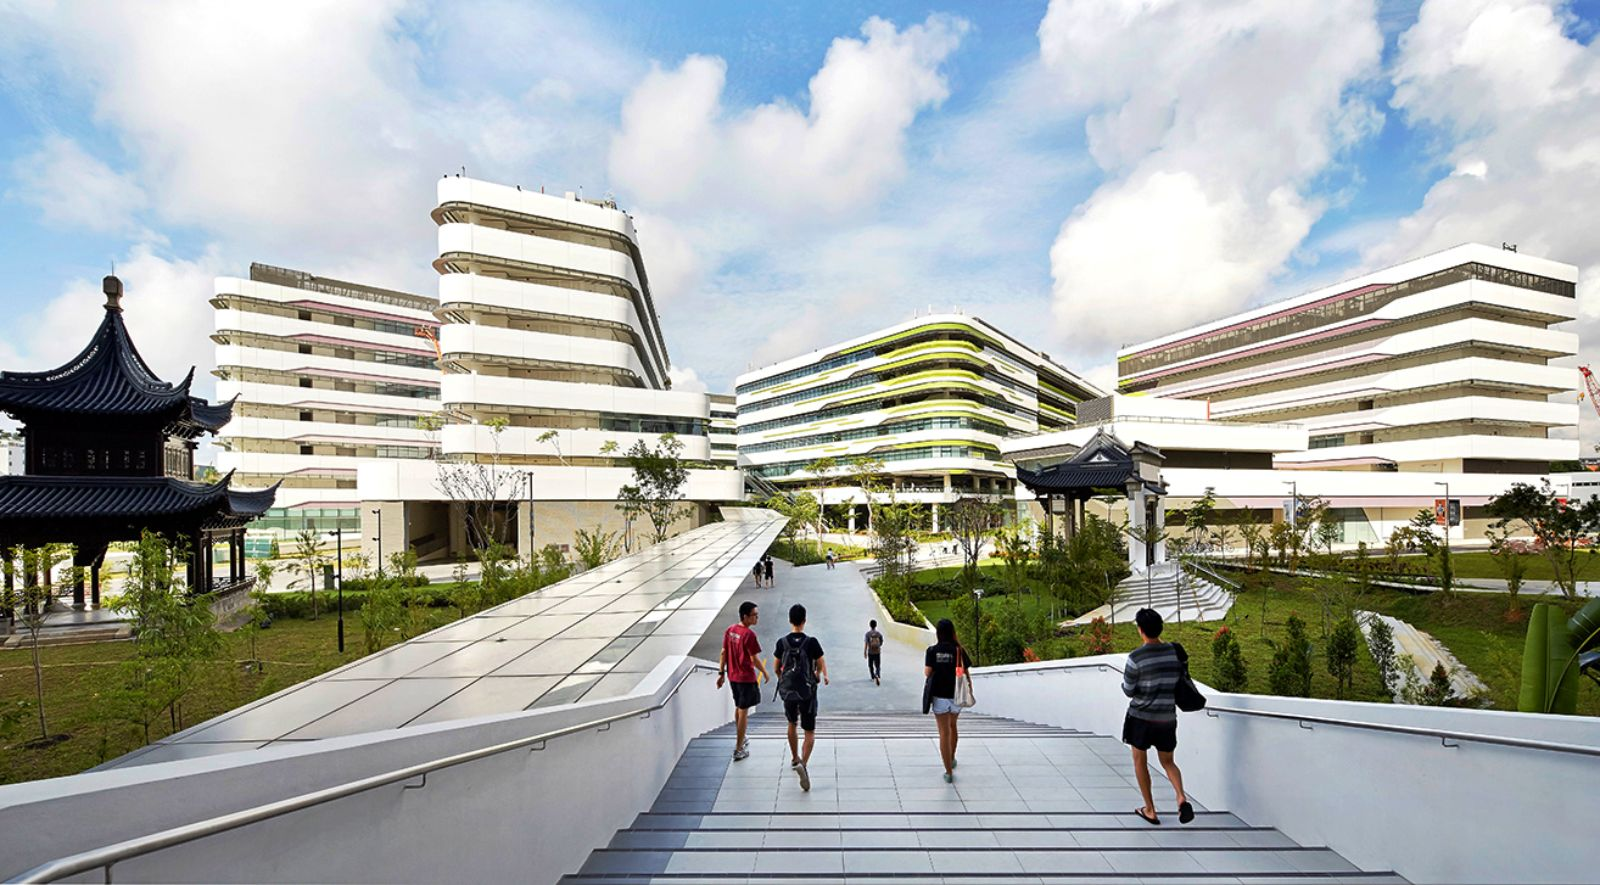 Singapore university of technology design by unstudio for Architecture and design